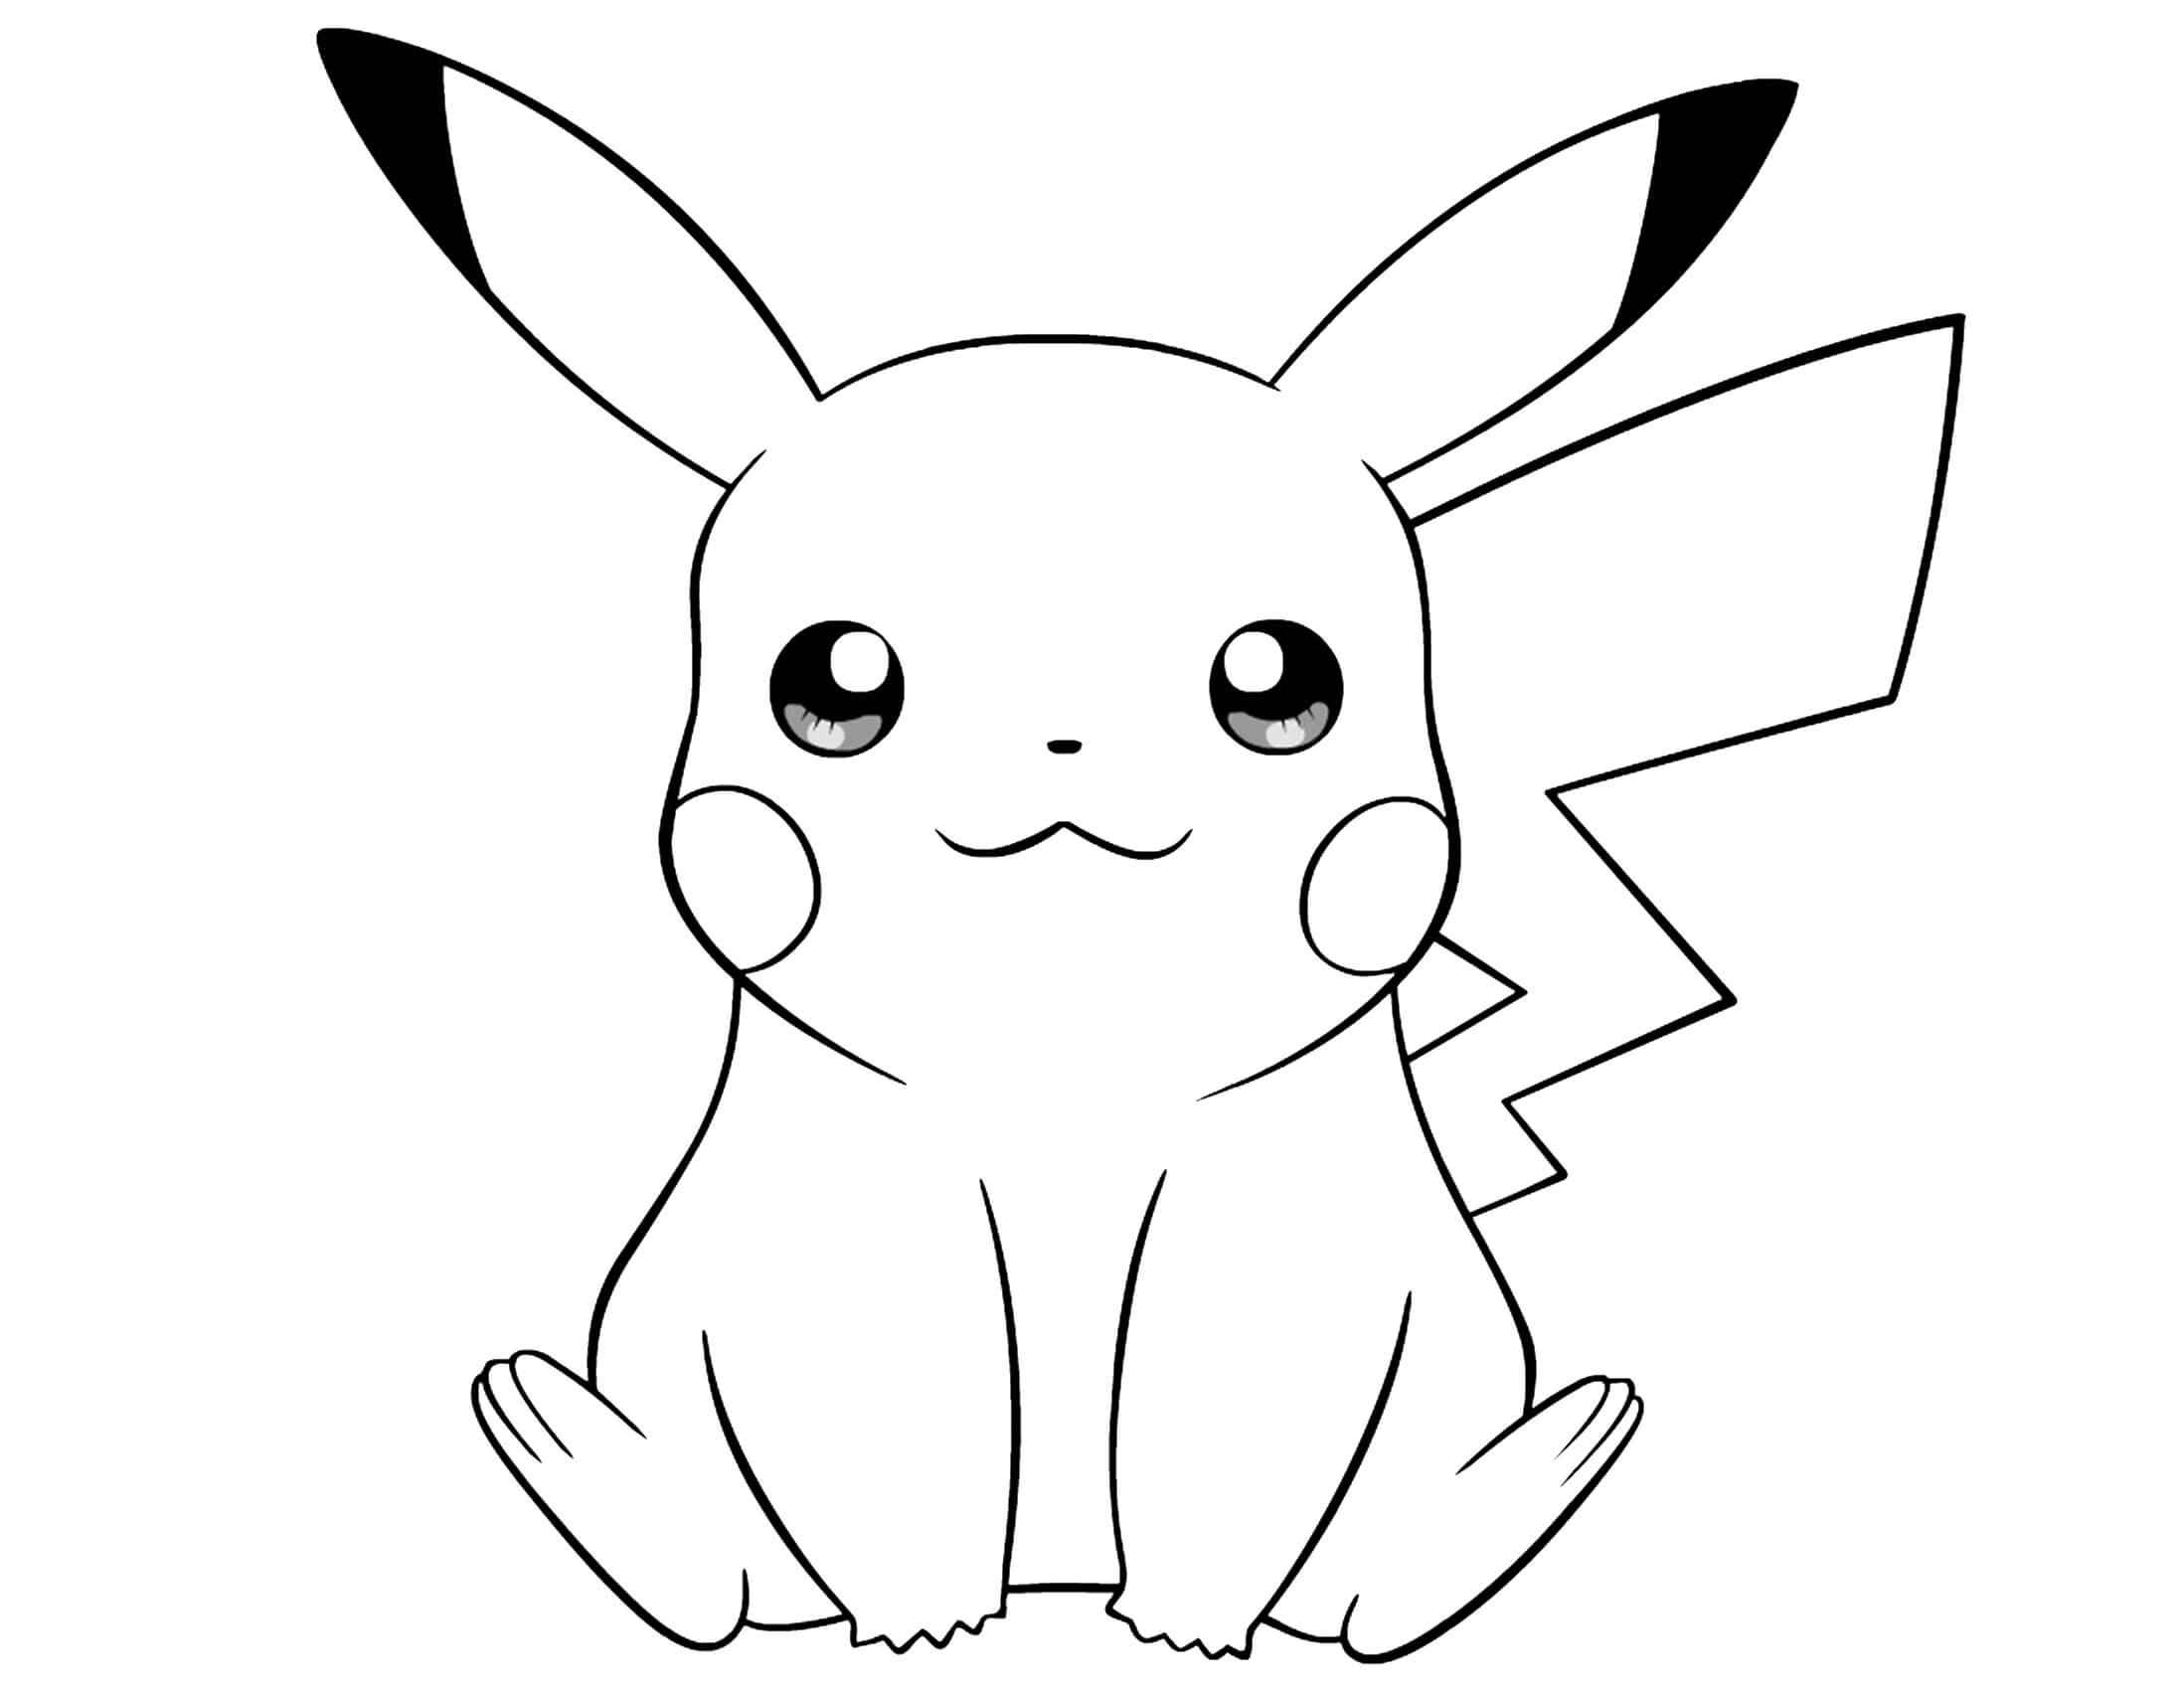 pikachu coloring template pikachu from pokémon go coloring page free printable pikachu template coloring